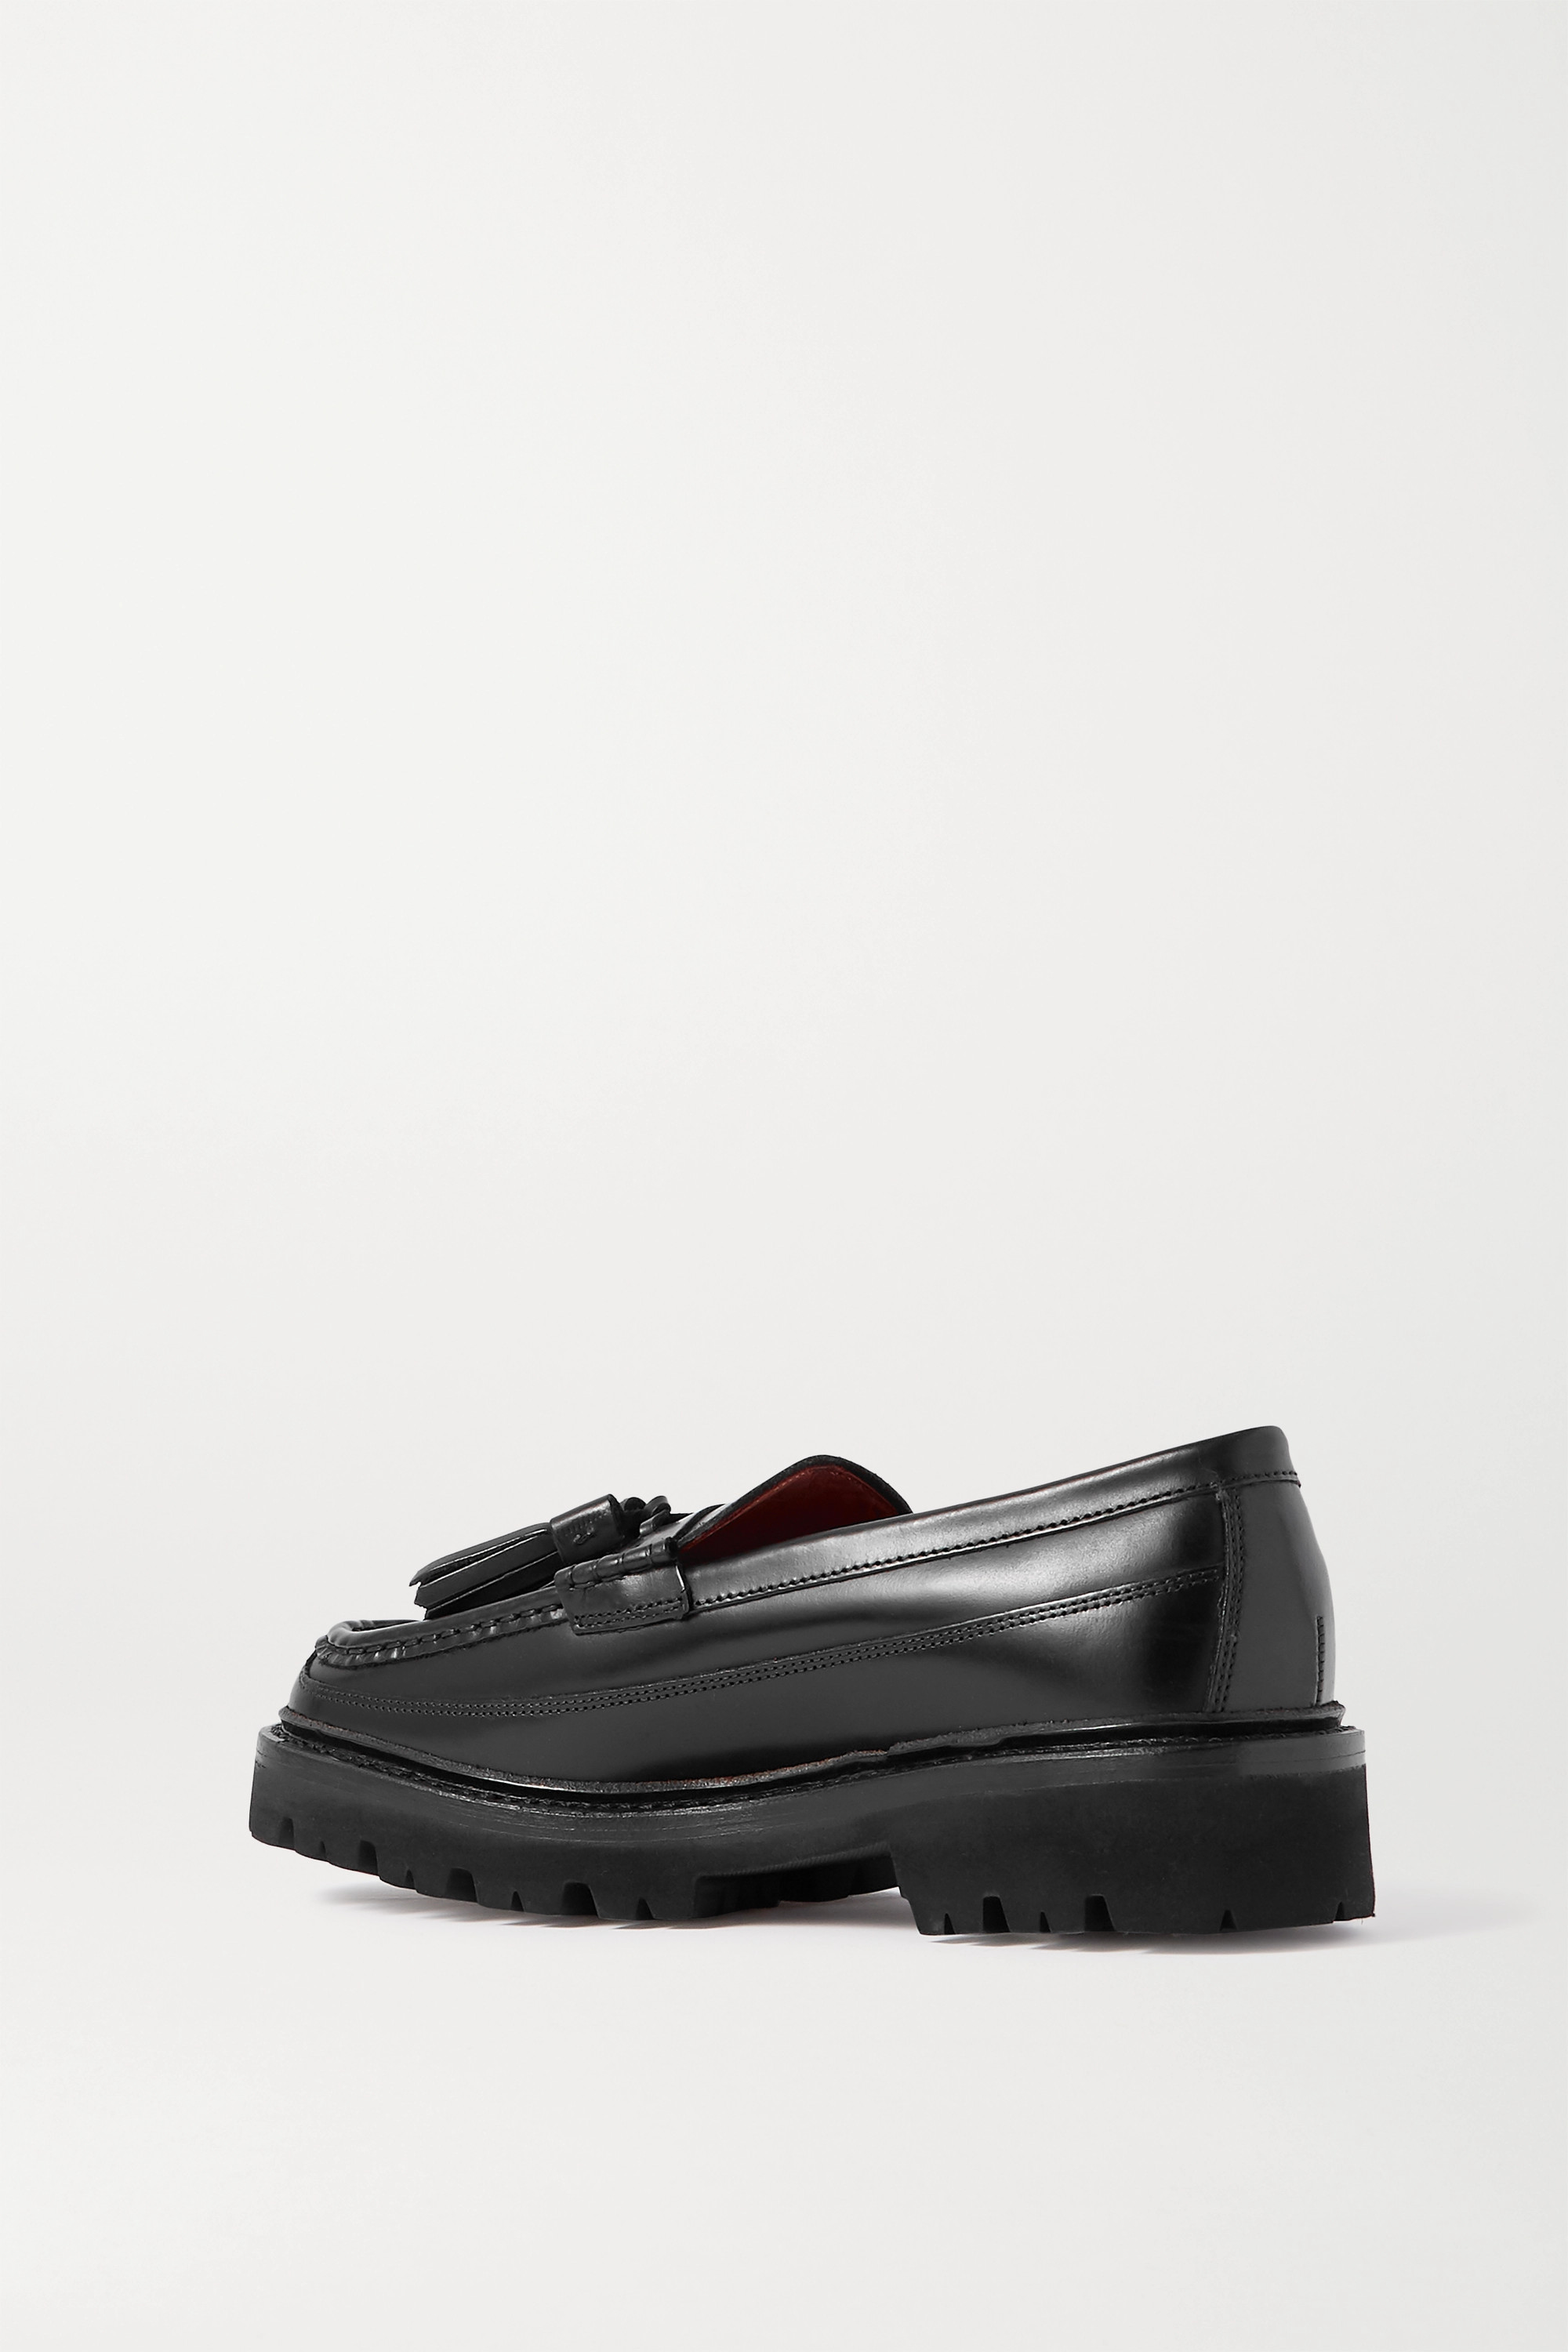 Grenson Bethany tasseled leather loafers